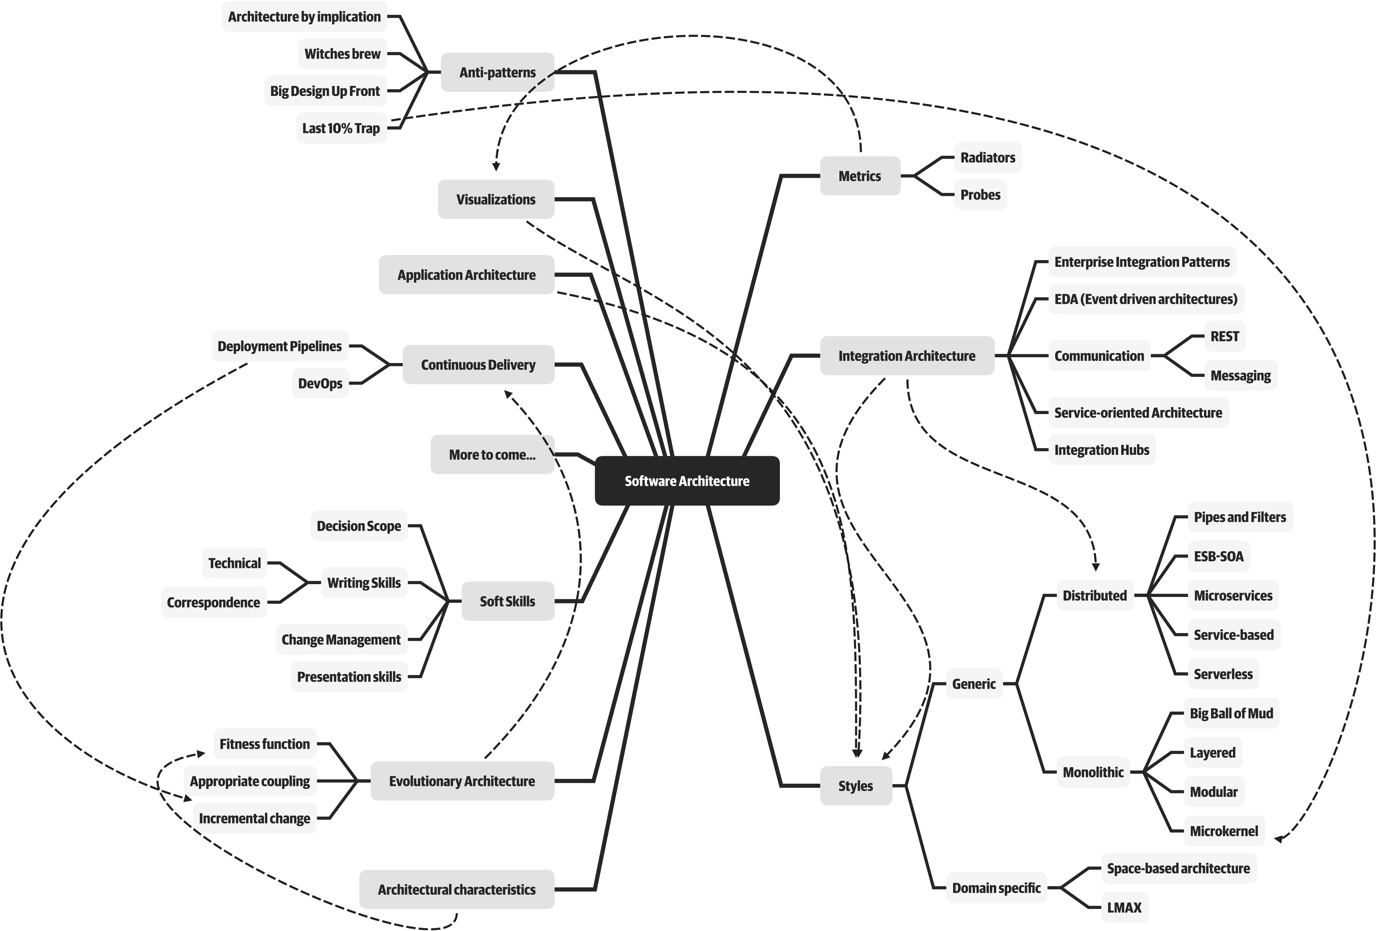 MindMap of software architect roles